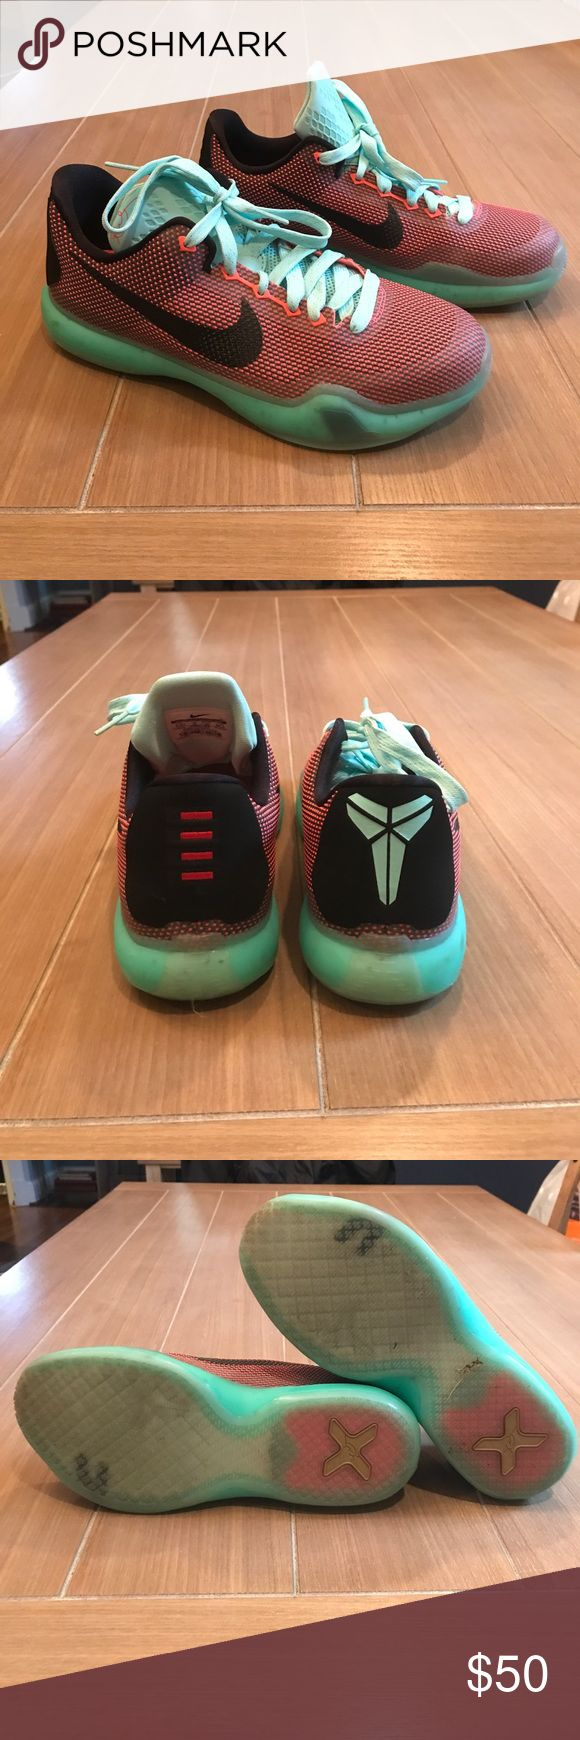 Kobe 10 Easter Sneakers Sz 6.5Y Kobe Bryant 10 Easter Sneakers Sz 6.5 Men's or youth or Women's Sz 8 — most comfortable shoe!!! Light teal, orange and black in color. Worn twice. Excellent used condition. Nike Shoes Sneakers